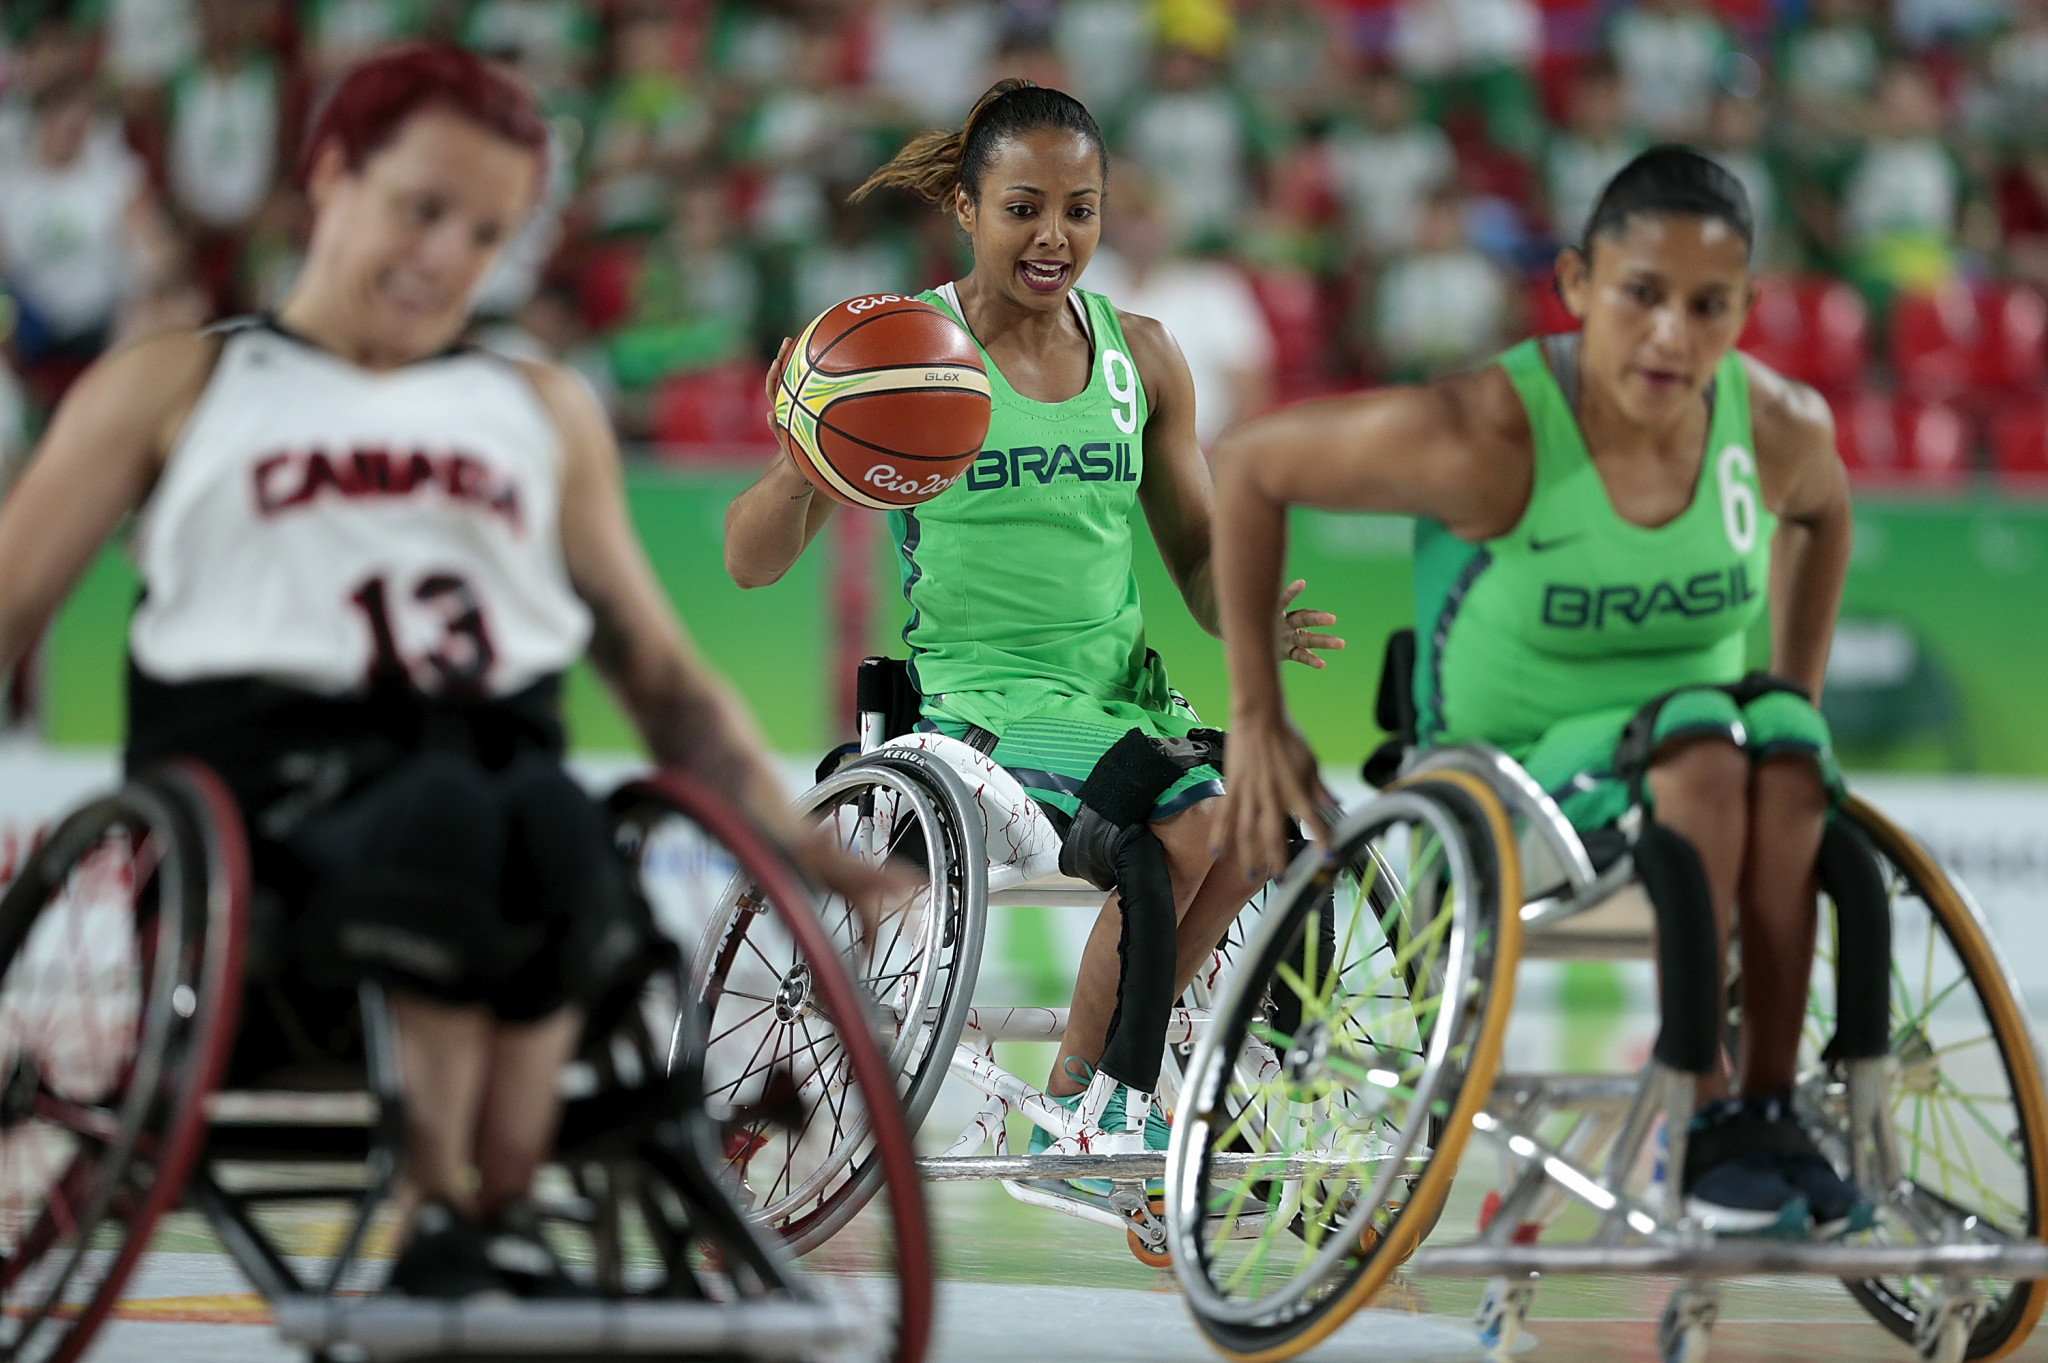 Brazil's women's team lost in the Paralympic quarter-finals at Rio 2016, but won a Parapan American Games bronze medal at Lima 2019 ©Getty Images